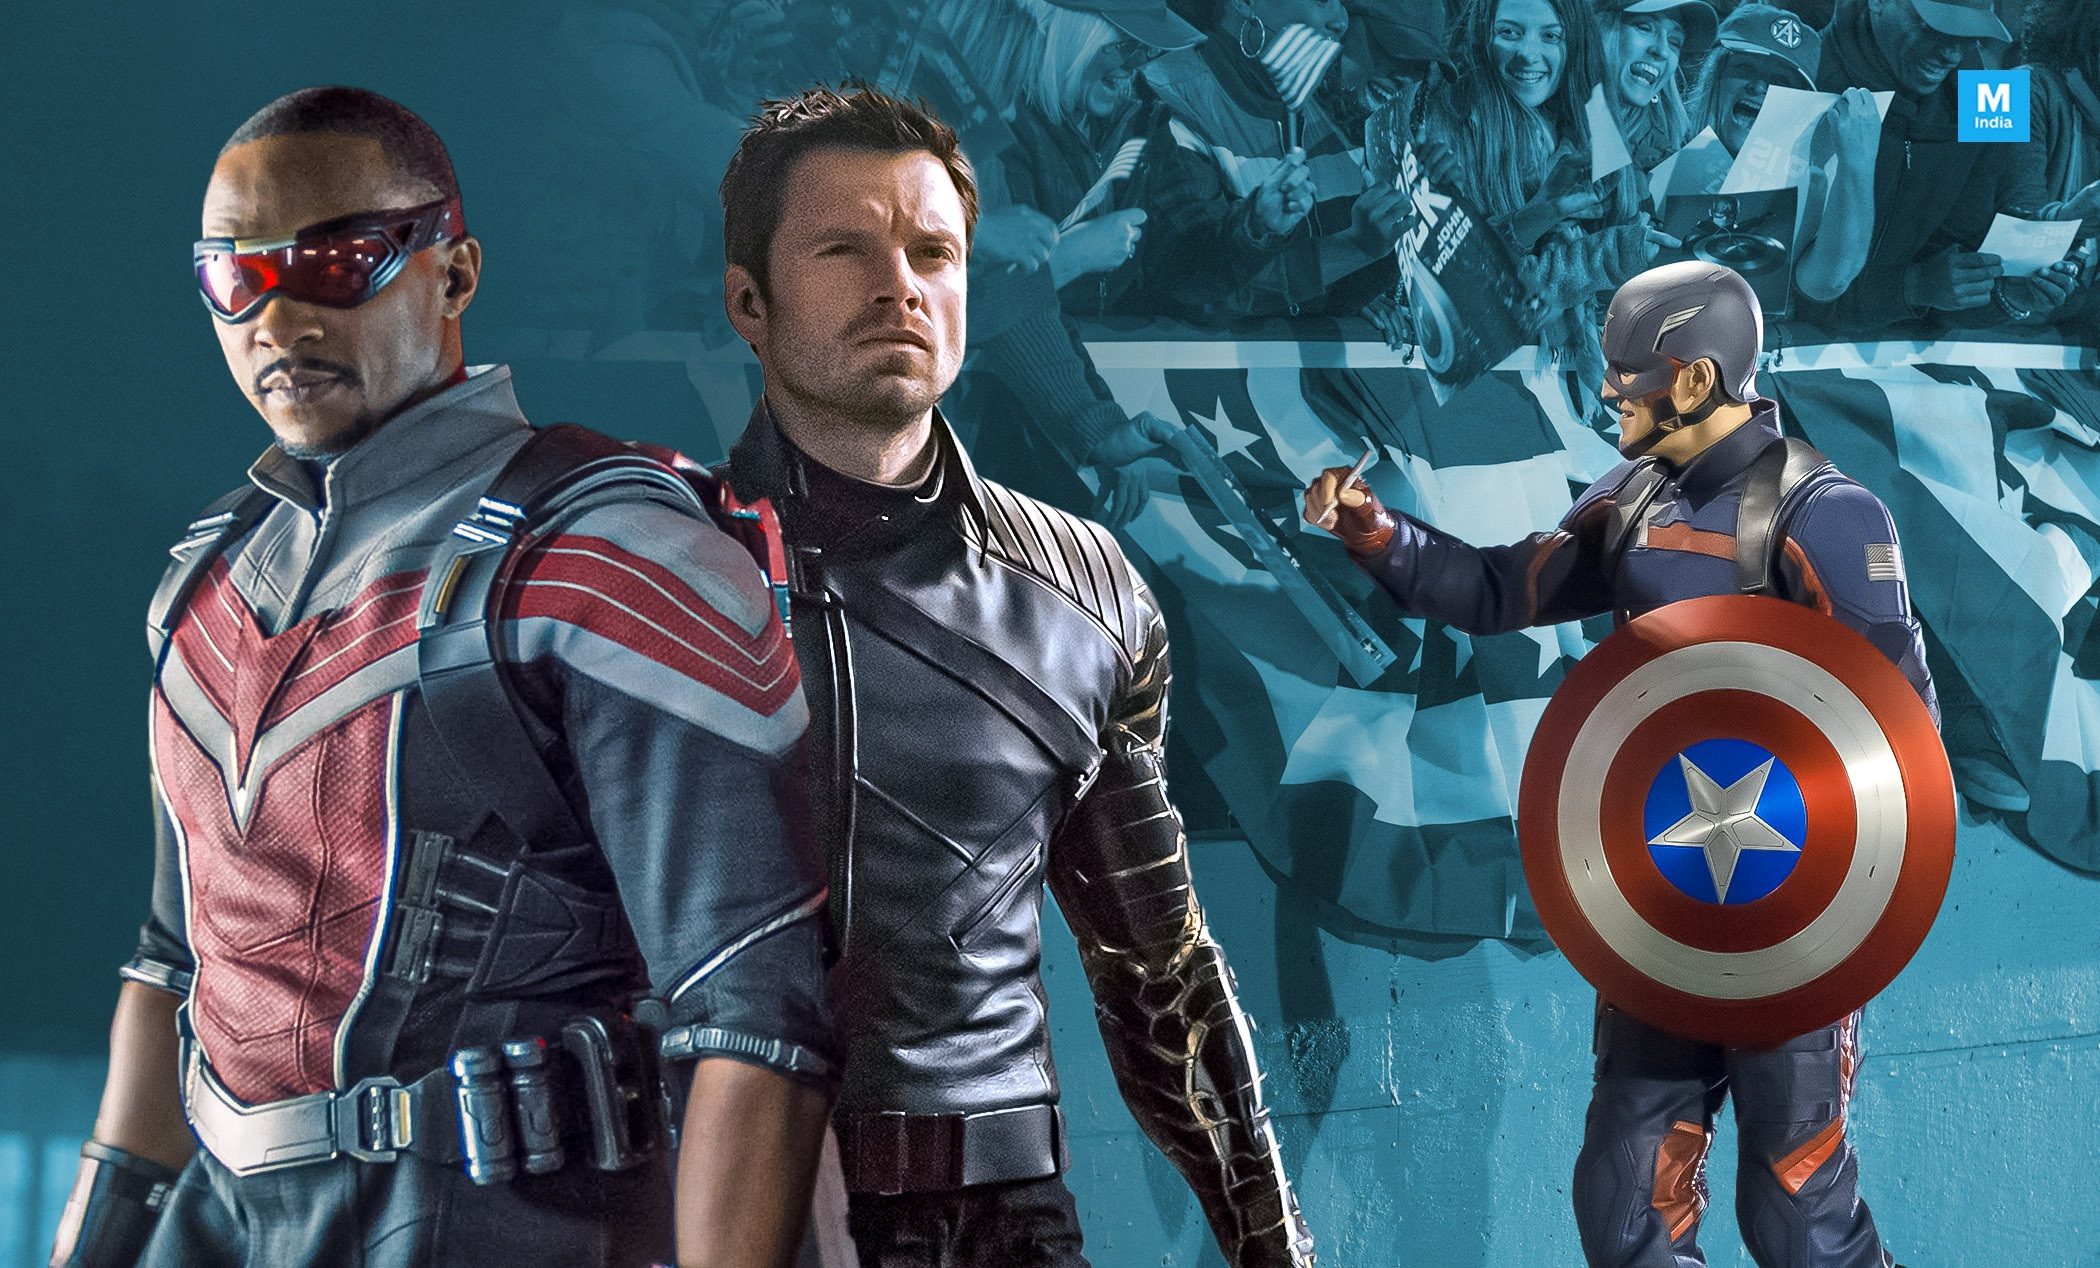 Watch The Falcon & The Winter Soldier Episode 7 Spoilers stream online on Hotstar Full Cast